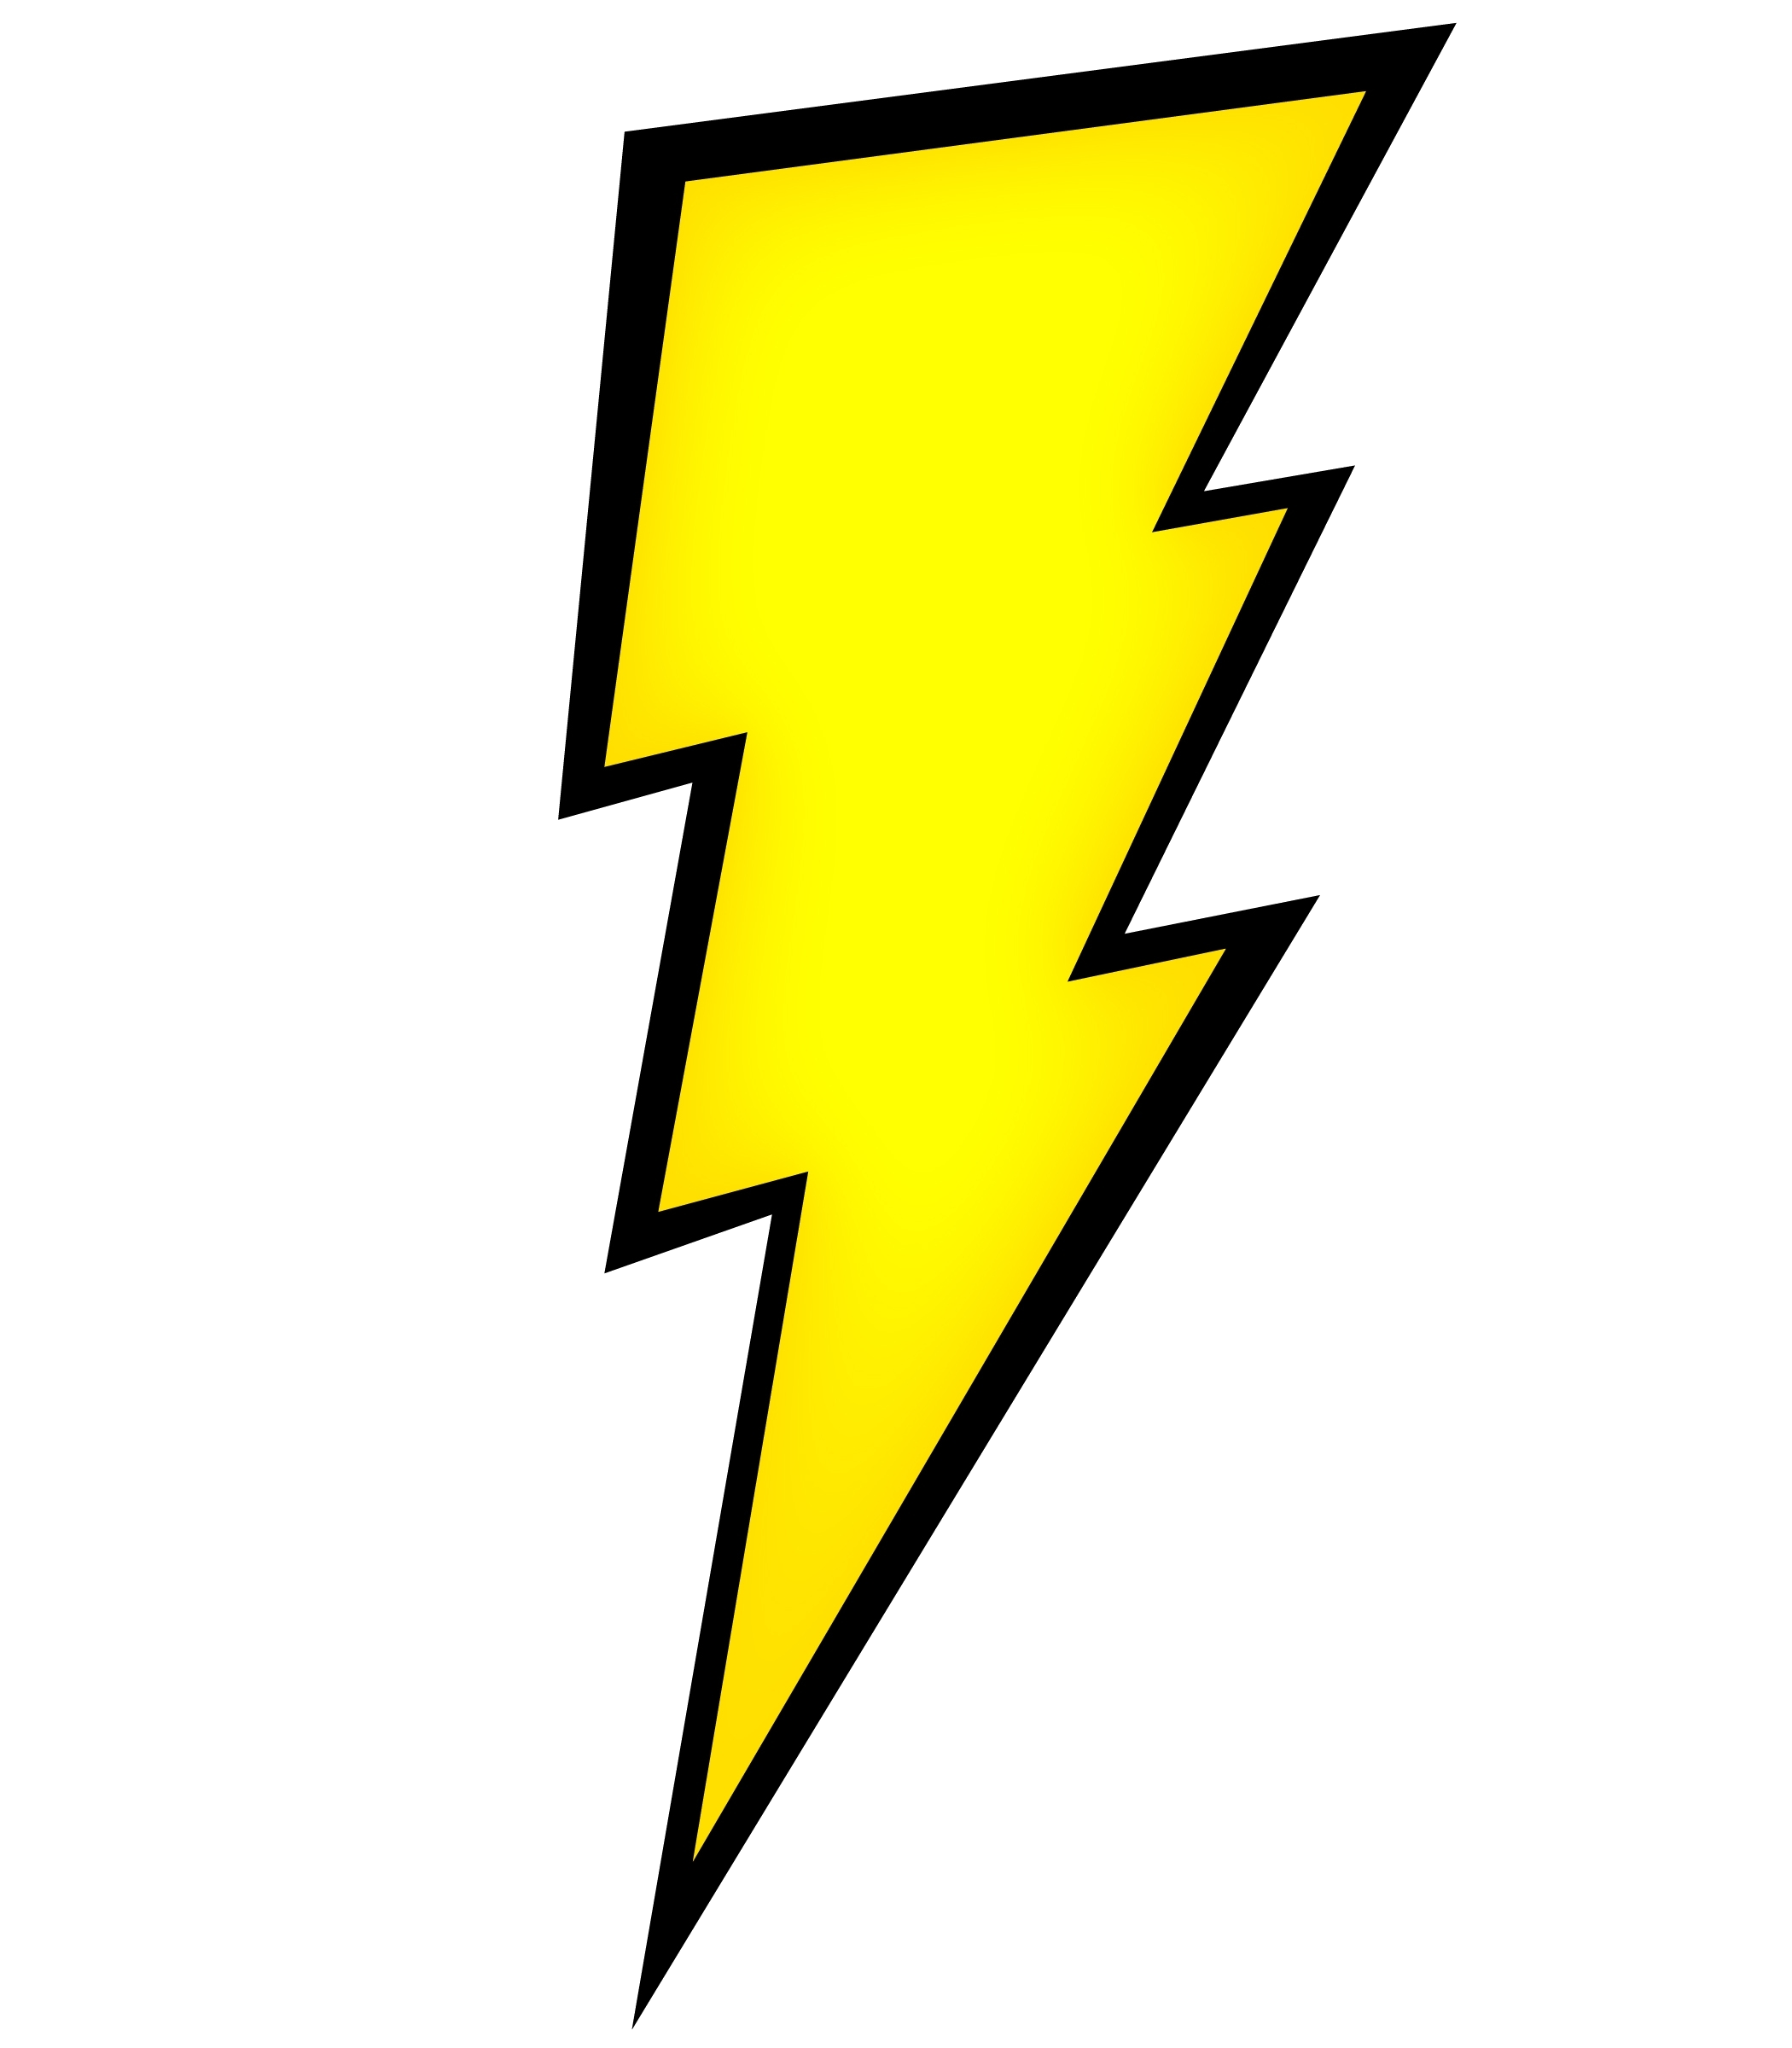 picture black and white stock Bolt clipart electric sign. Lightening electrical power symbol.